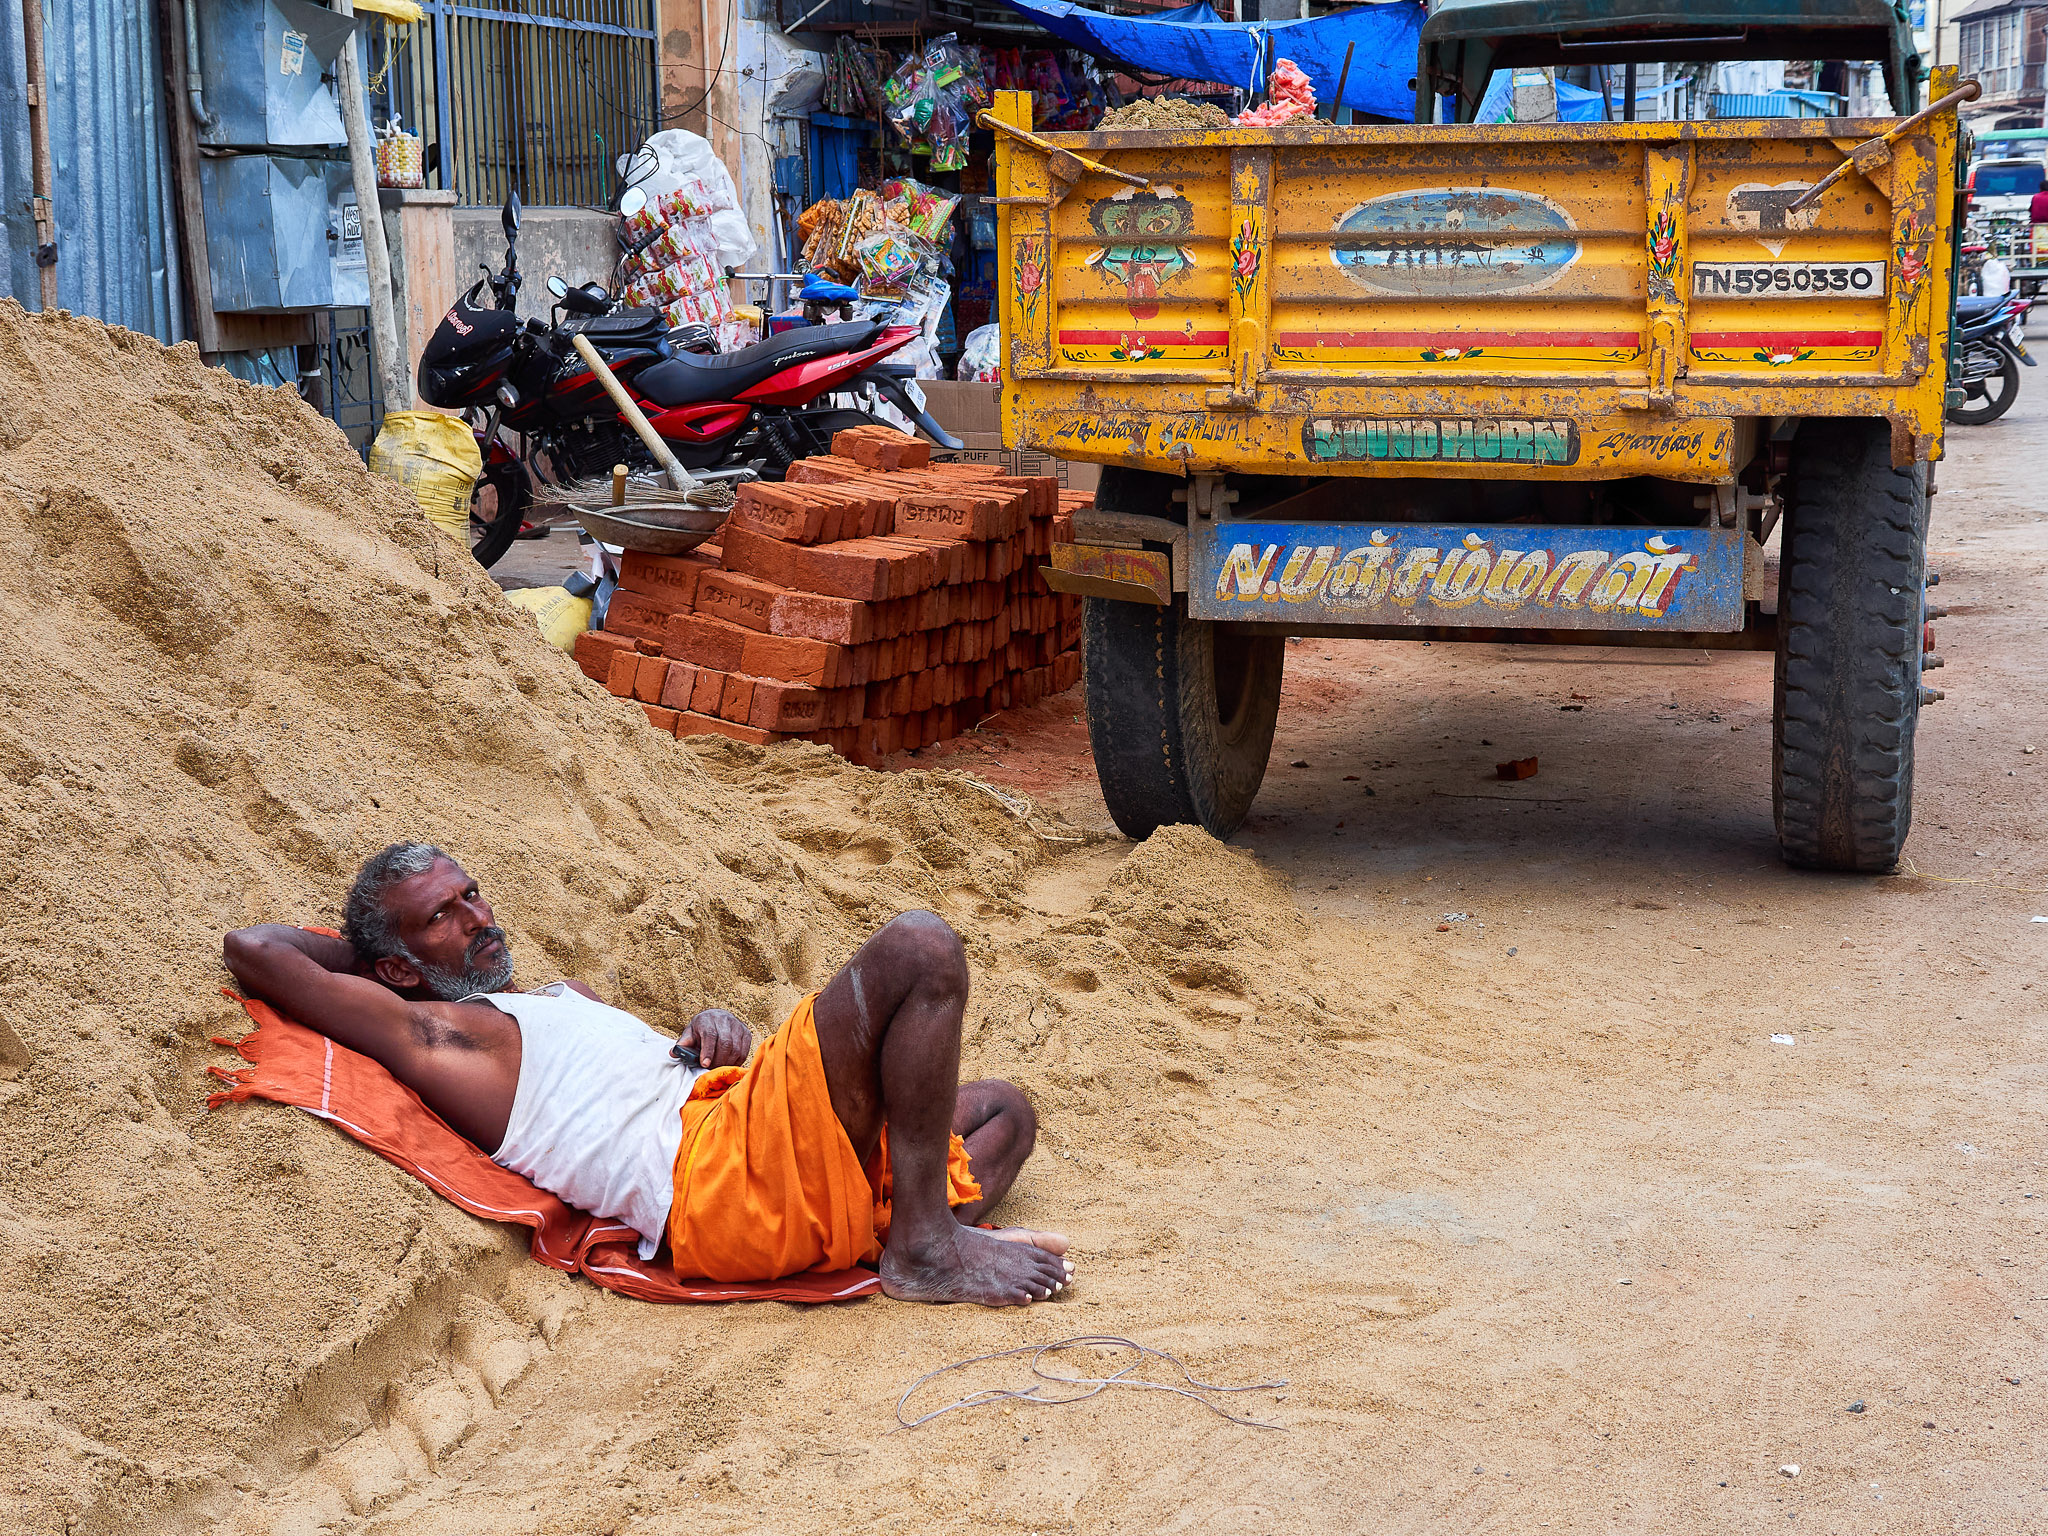 A man resting on a heap of sand at the roadside construction, Madurai, Tamil Nadu, India